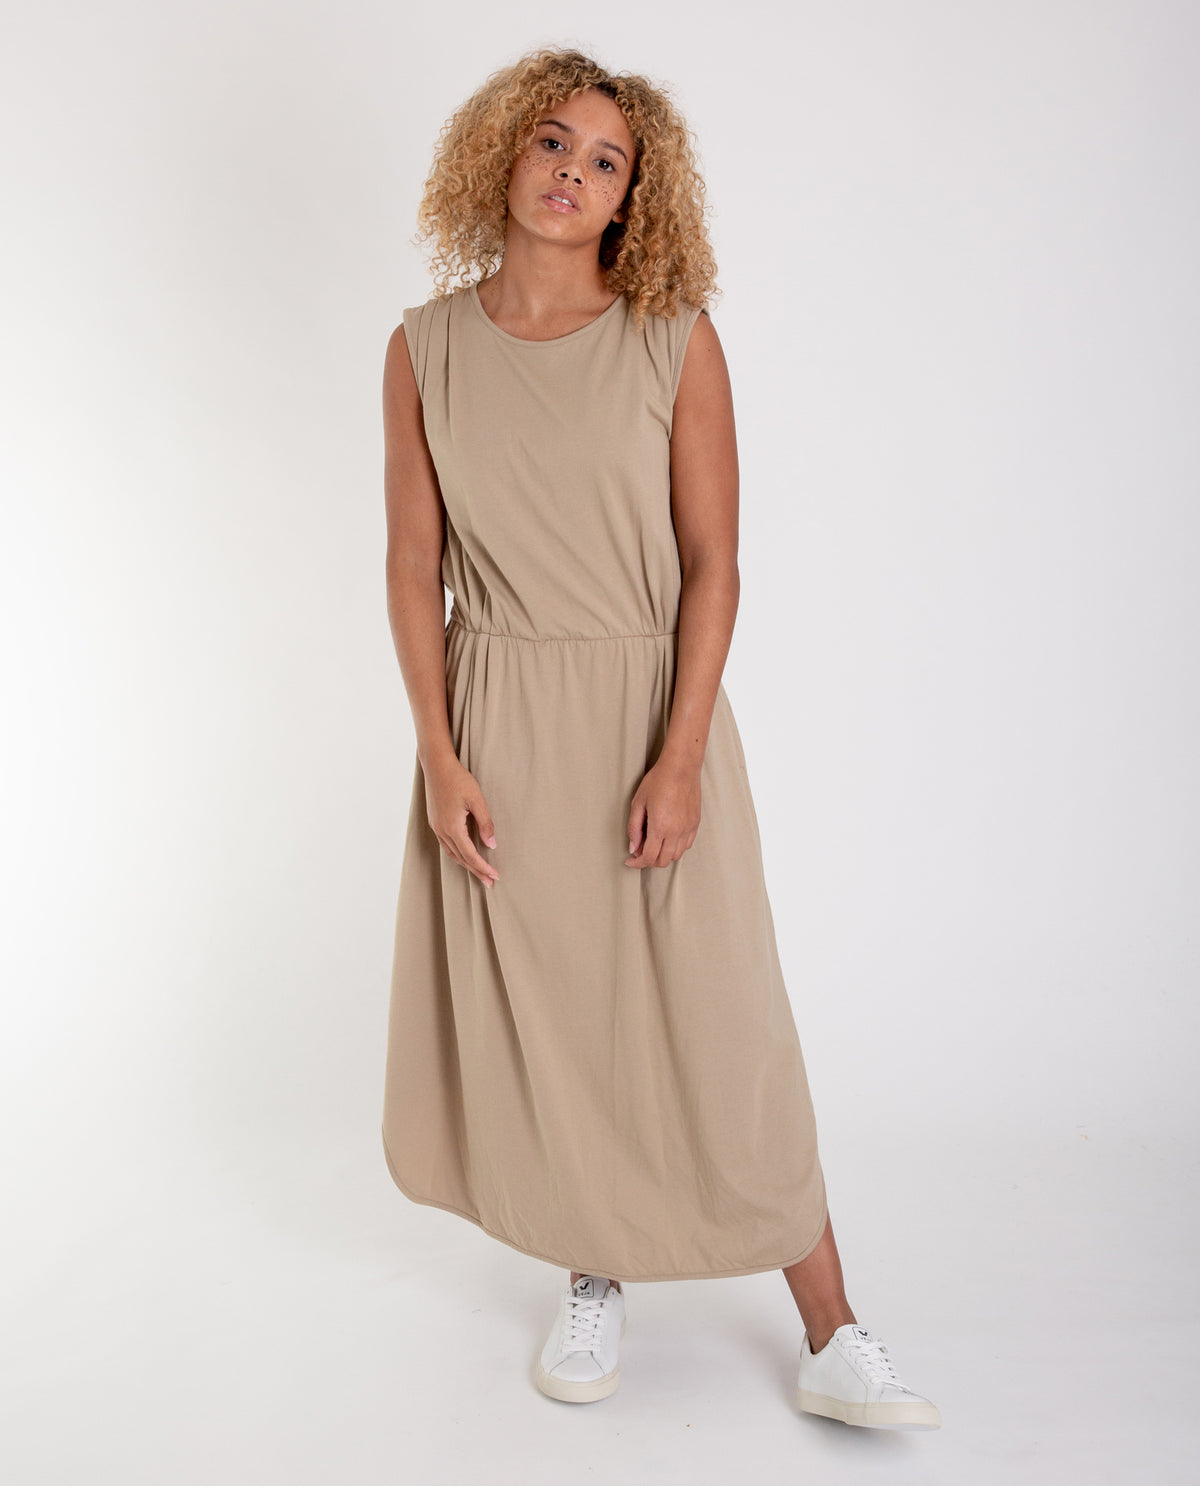 381e192dc72f The SS19 Collection – Beaumont Organic